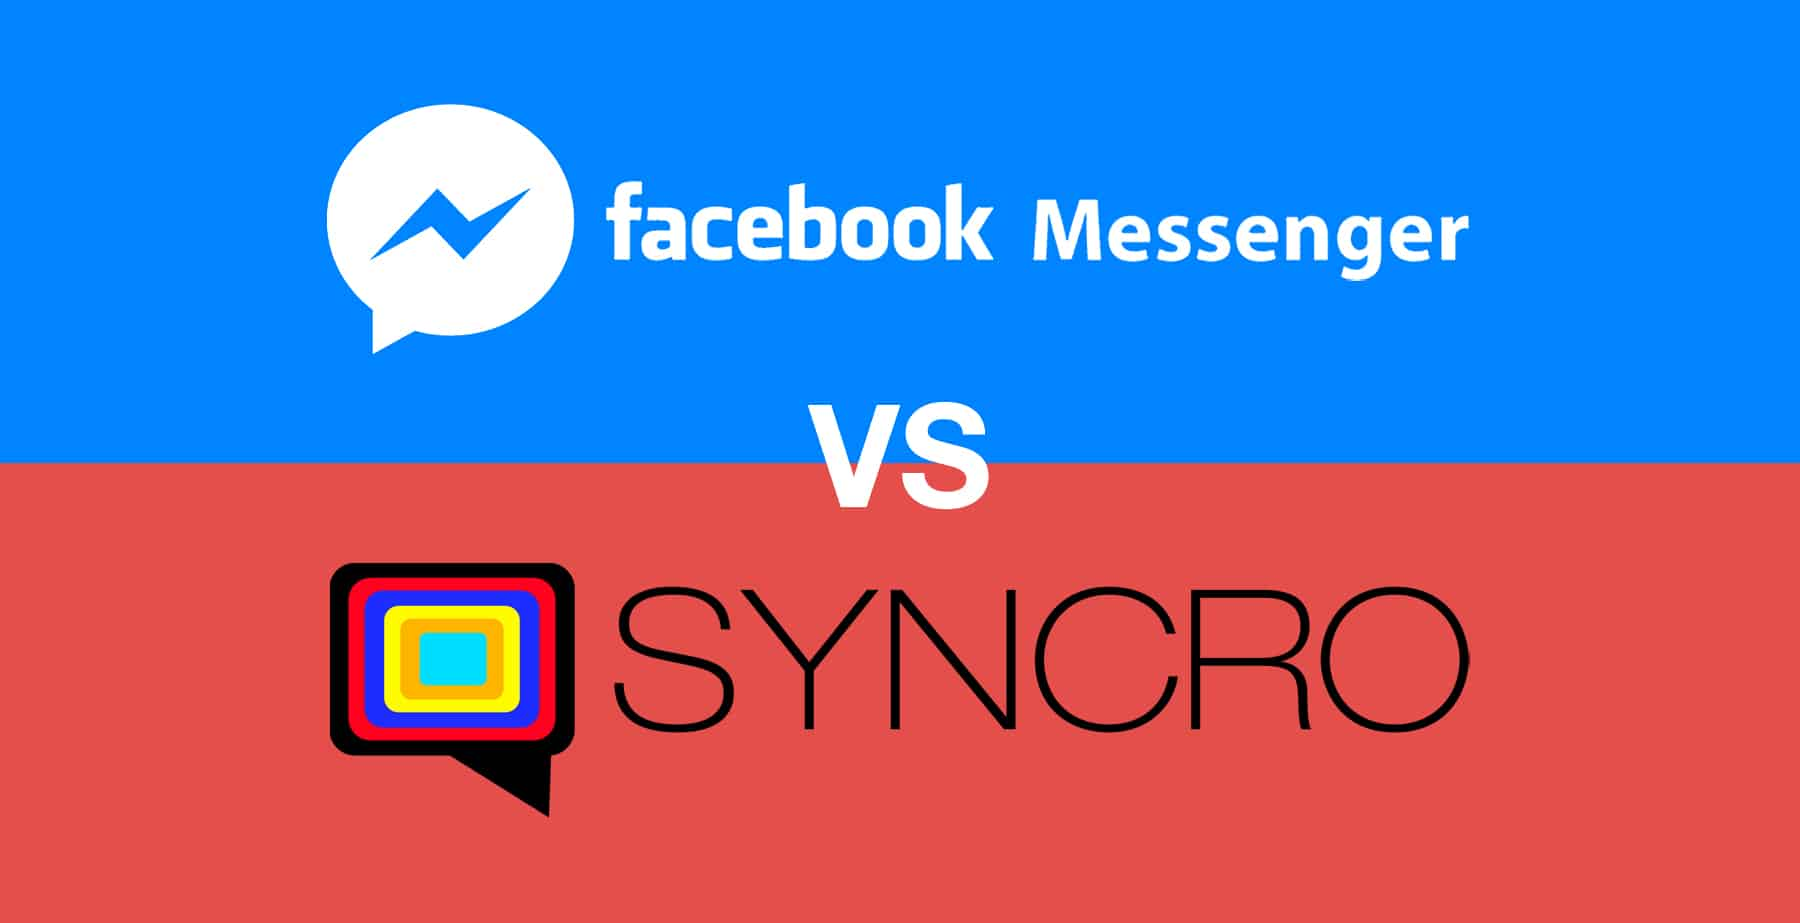 SYNCRO is a Better Business Chat Alternative to Facebook Messenger